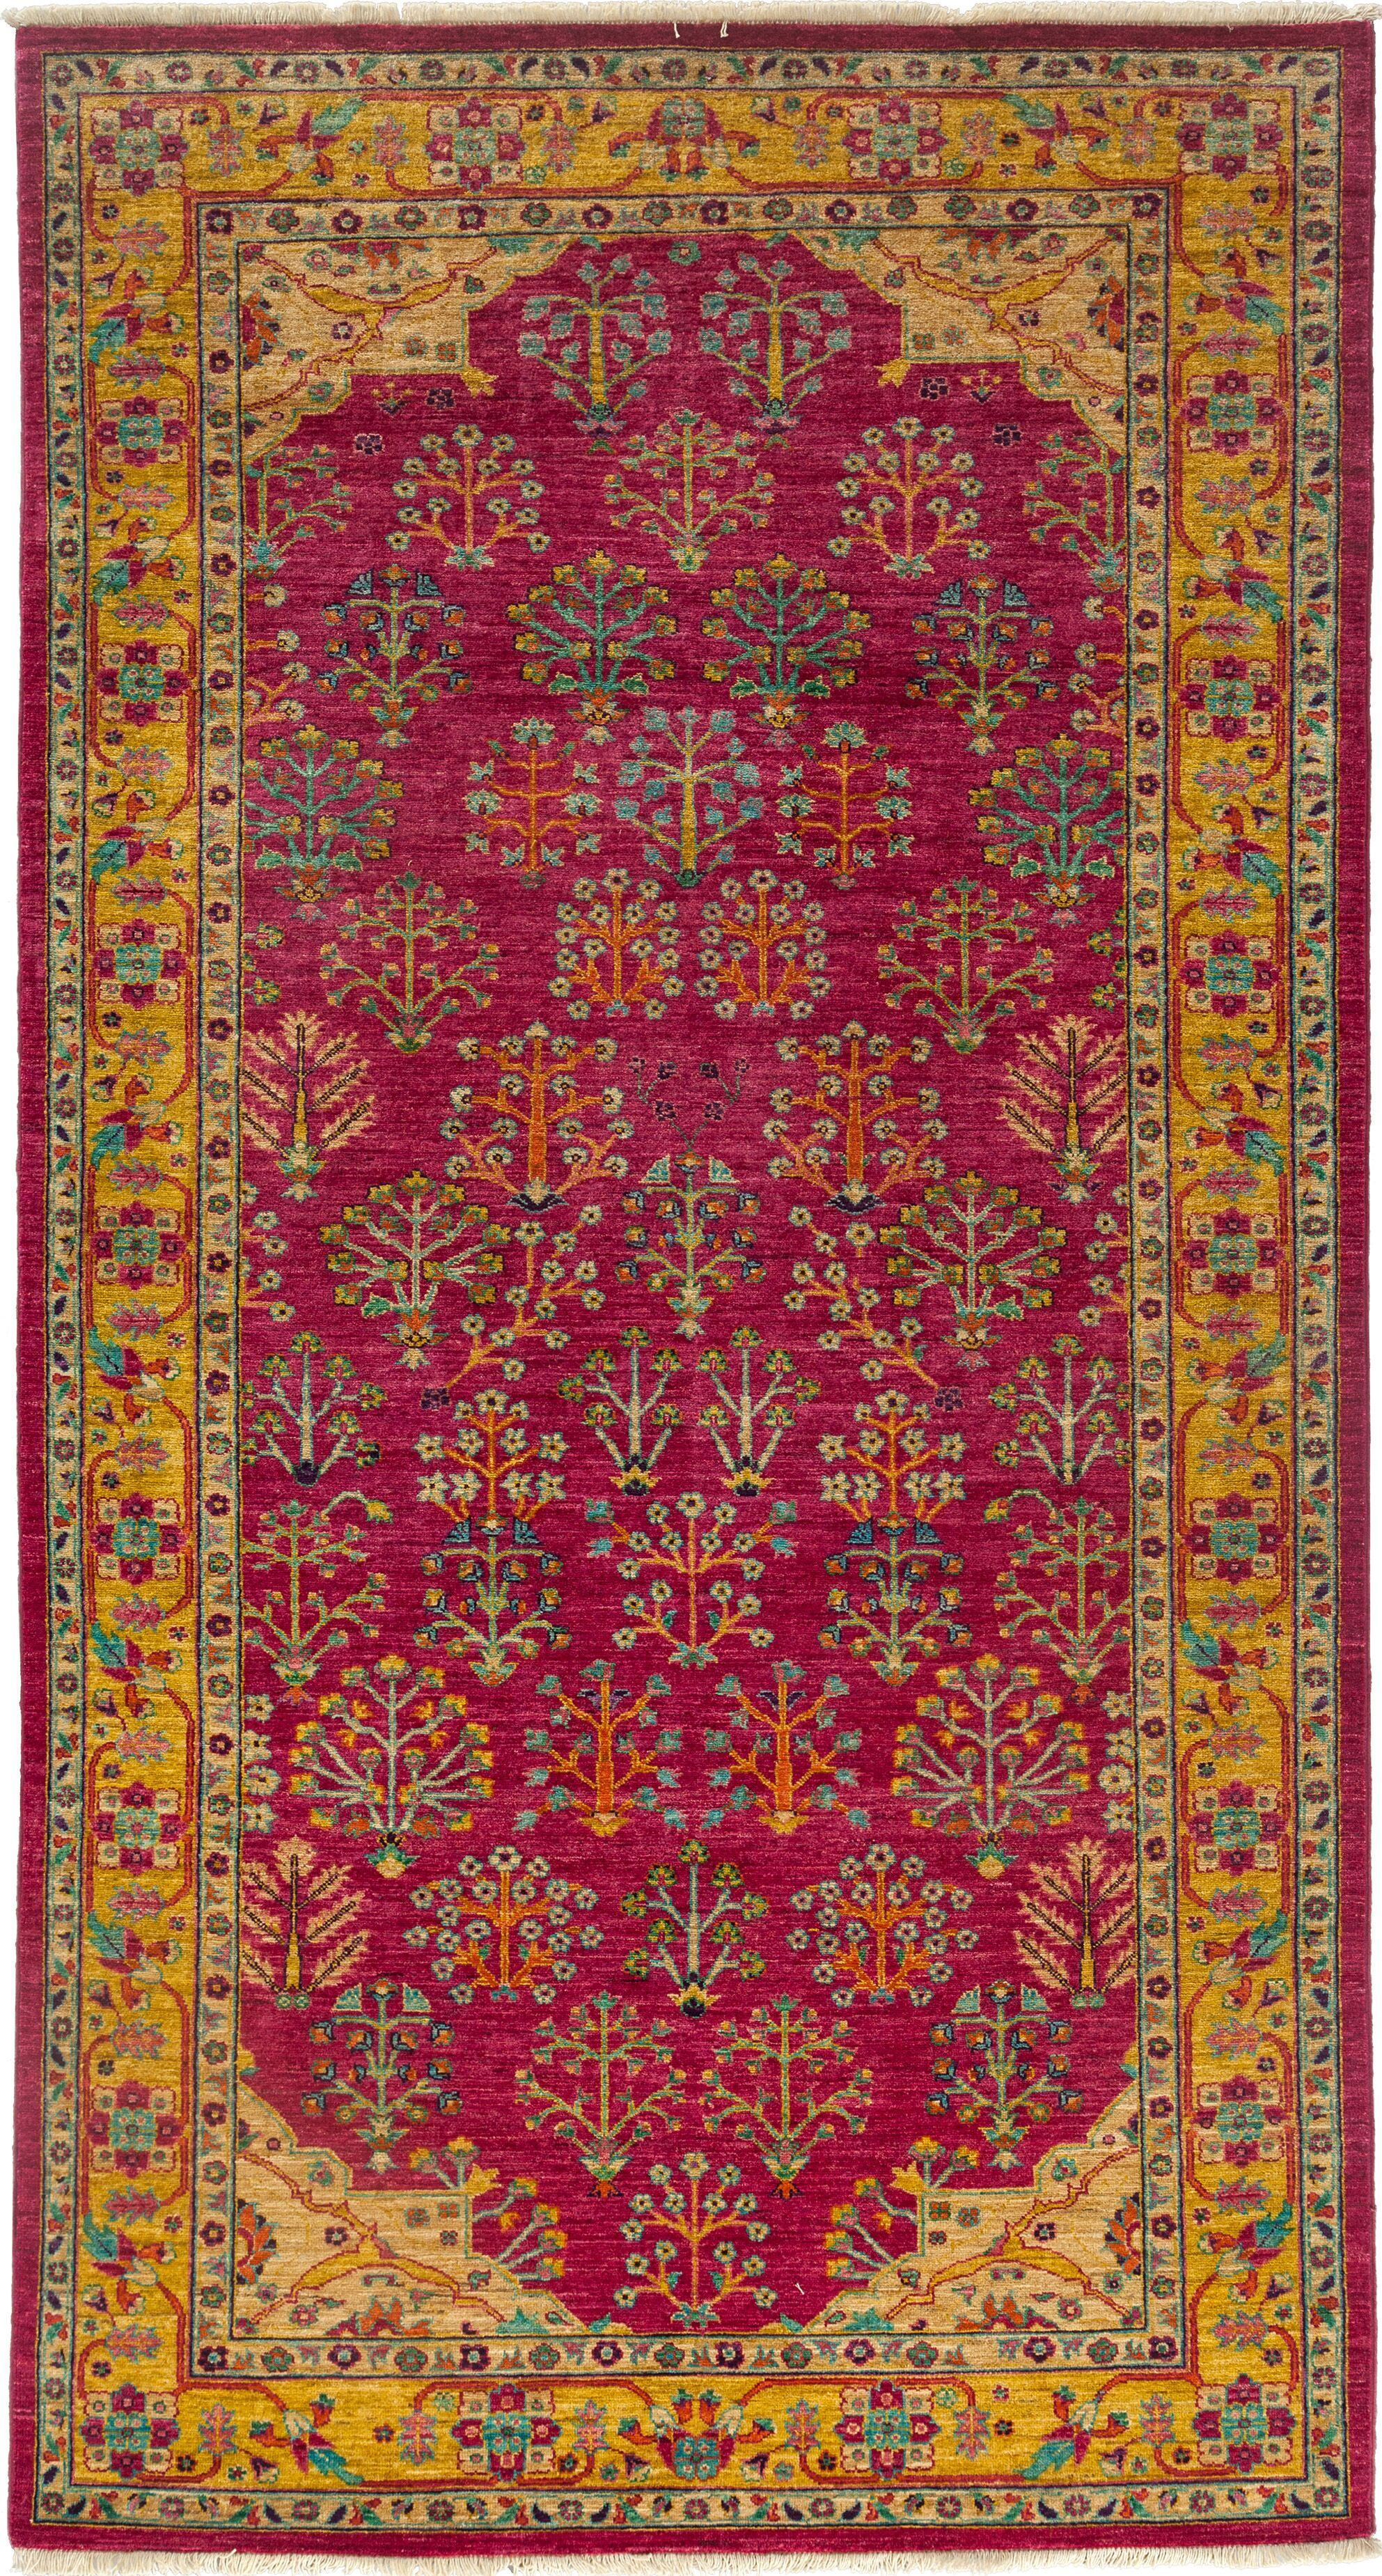 One-of-a-Kind Ziegler Hand-Knotted Pink / Yellow Area Rug